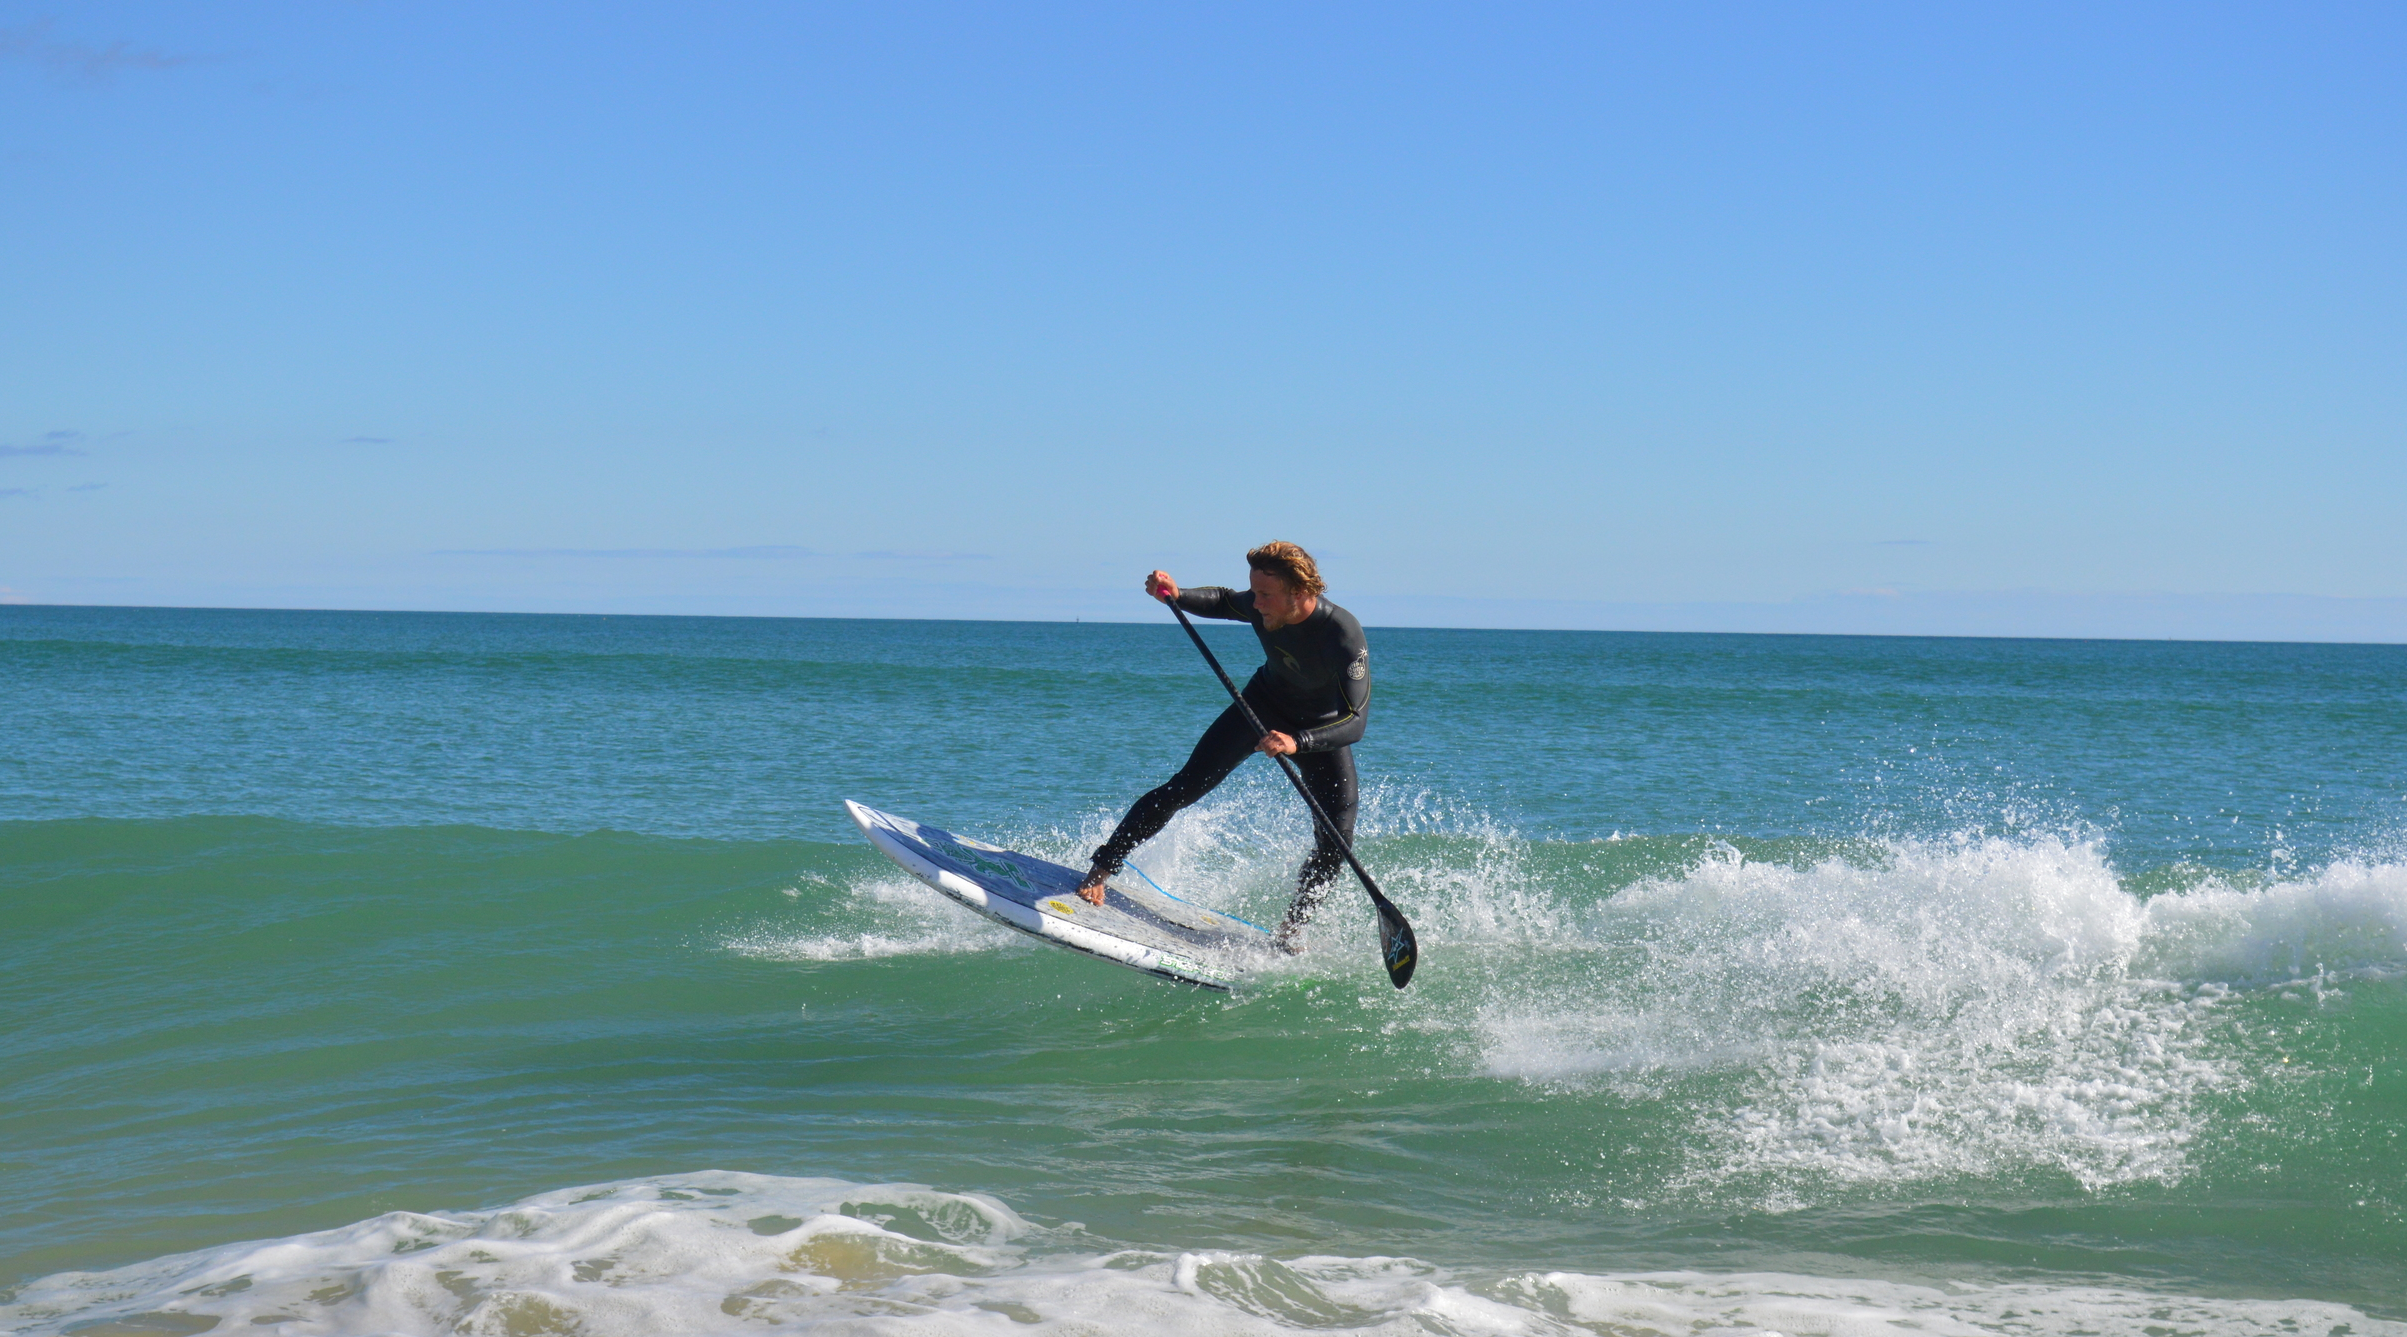 SUP Surfing at Fuseta Beach